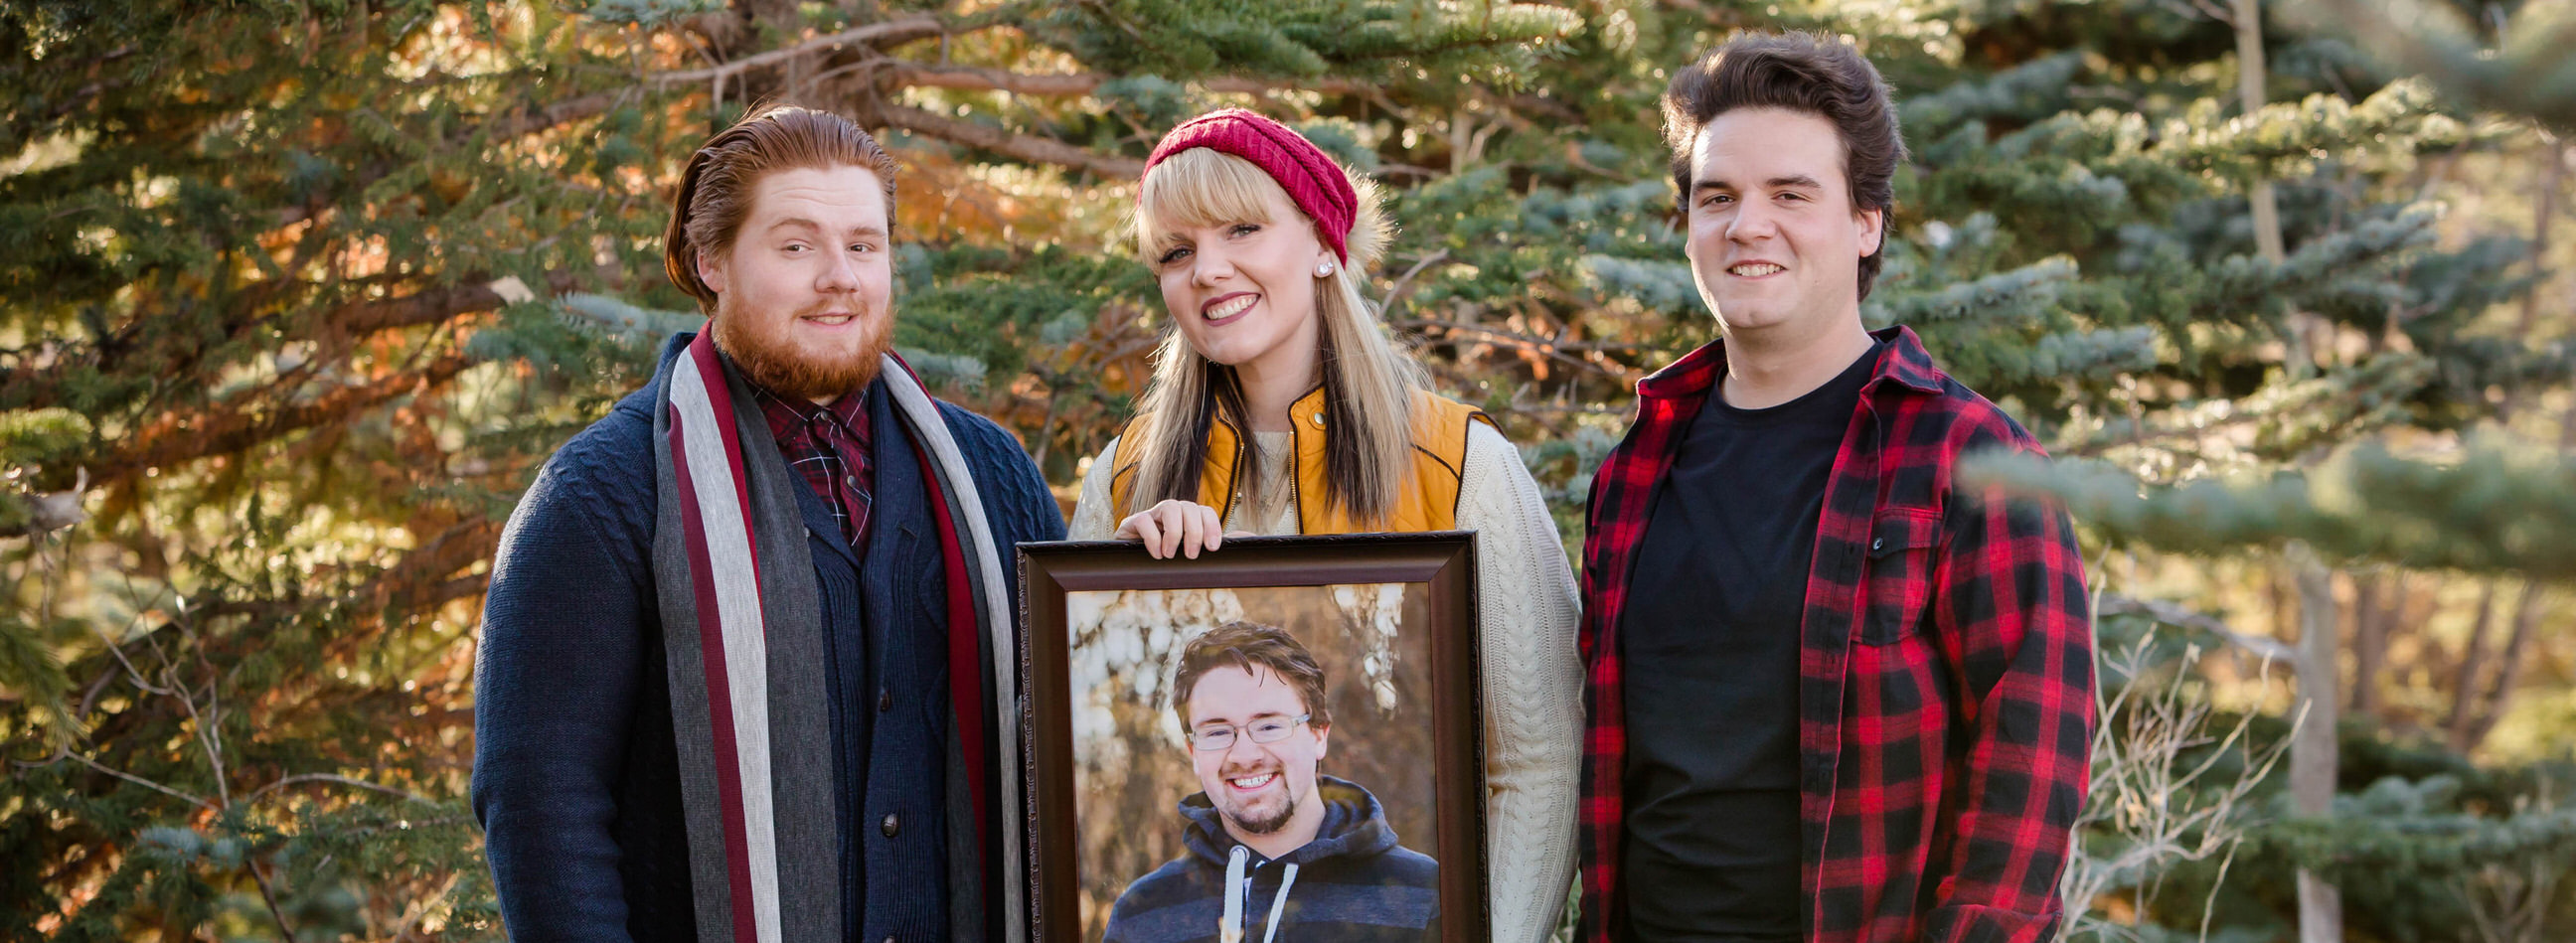 Alyssa testimonial, siblings with memorial to brother